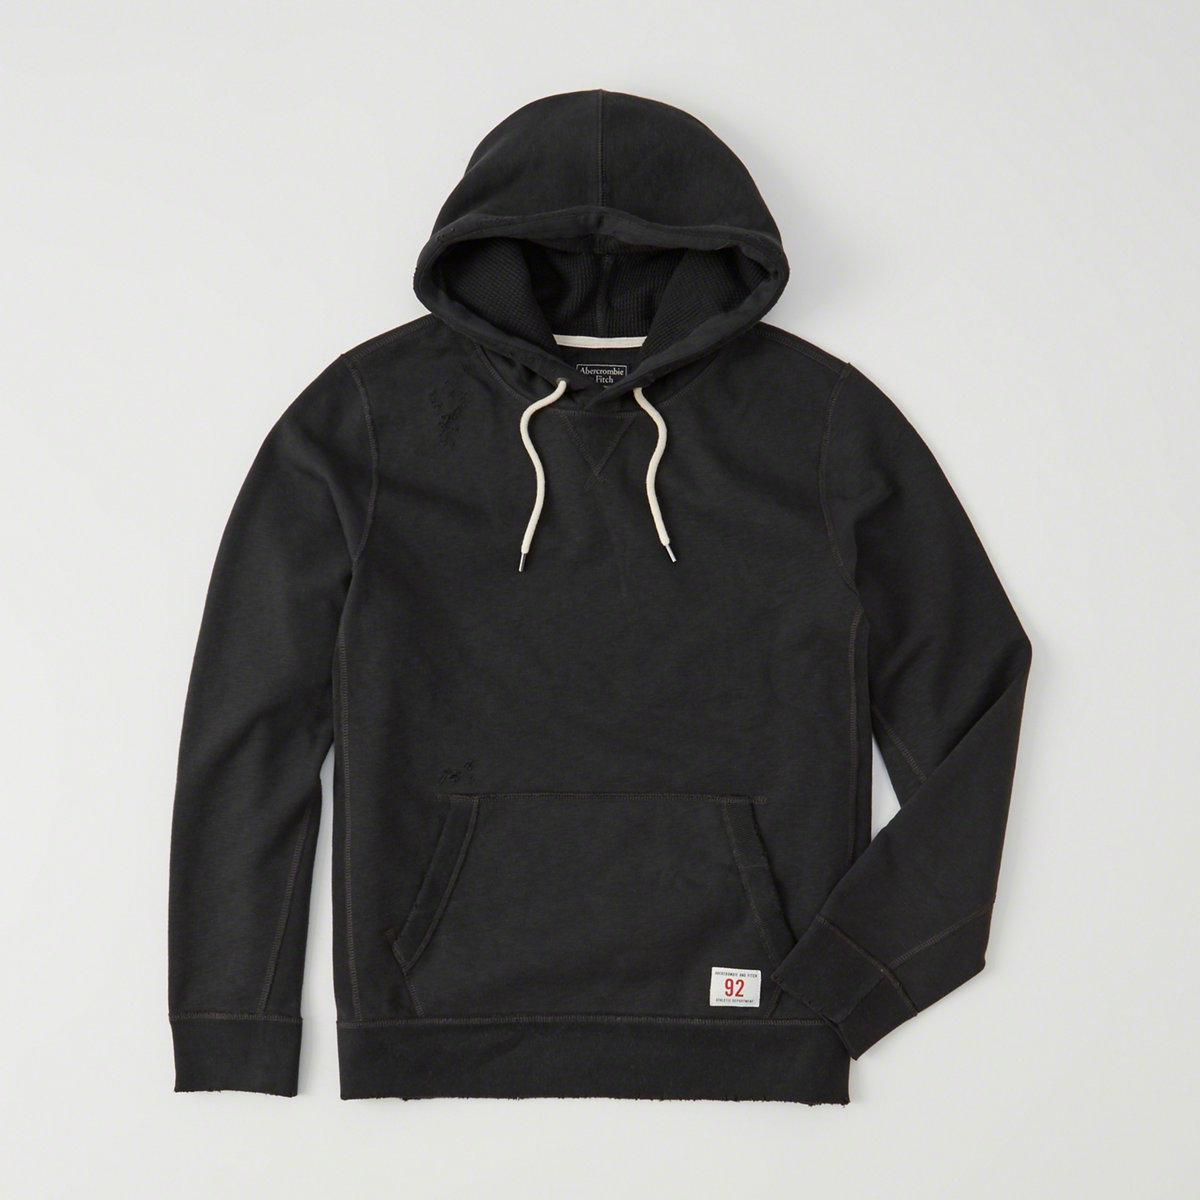 Abercrombie & Fitch Heavyweight Ripped Hoodie In